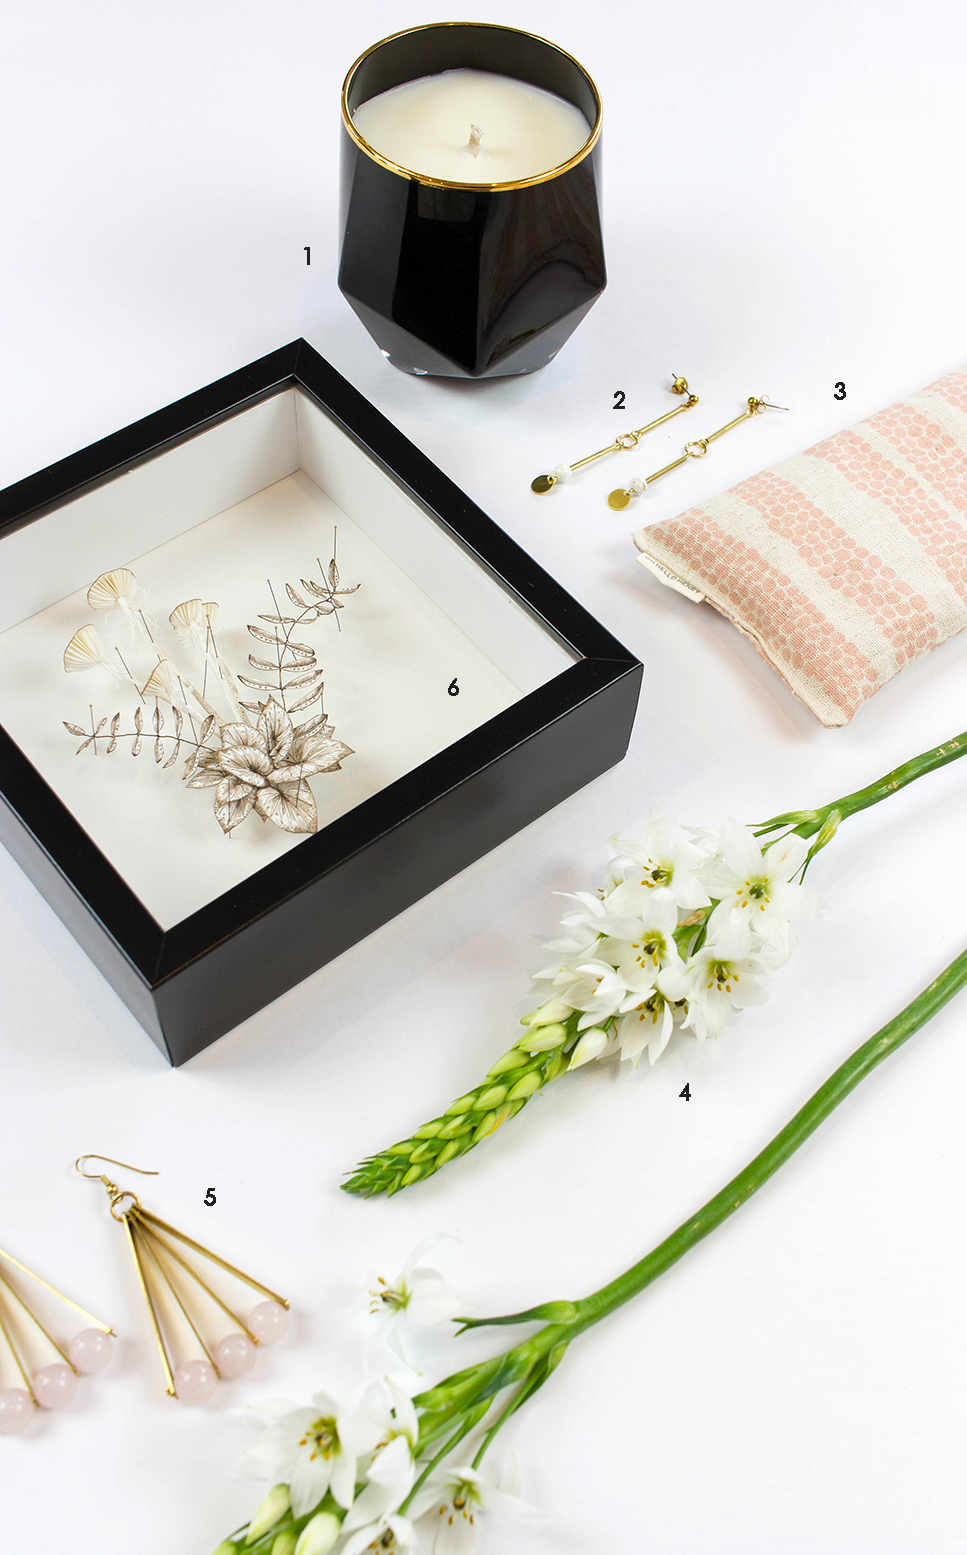 ABOVE: 1. Scented Soy Candle by  Mystique Scents and Creations  2. Brass Earrings by  Madi Young  3. Lavender Eye Pillow by  Oh Hello Henry  4. Fresh Blooms by  Megan Claire Floral Design  5. Brass Earrings by  Madi Young  6. Fine Art Paper Sculpture by  Colleen Southwell.